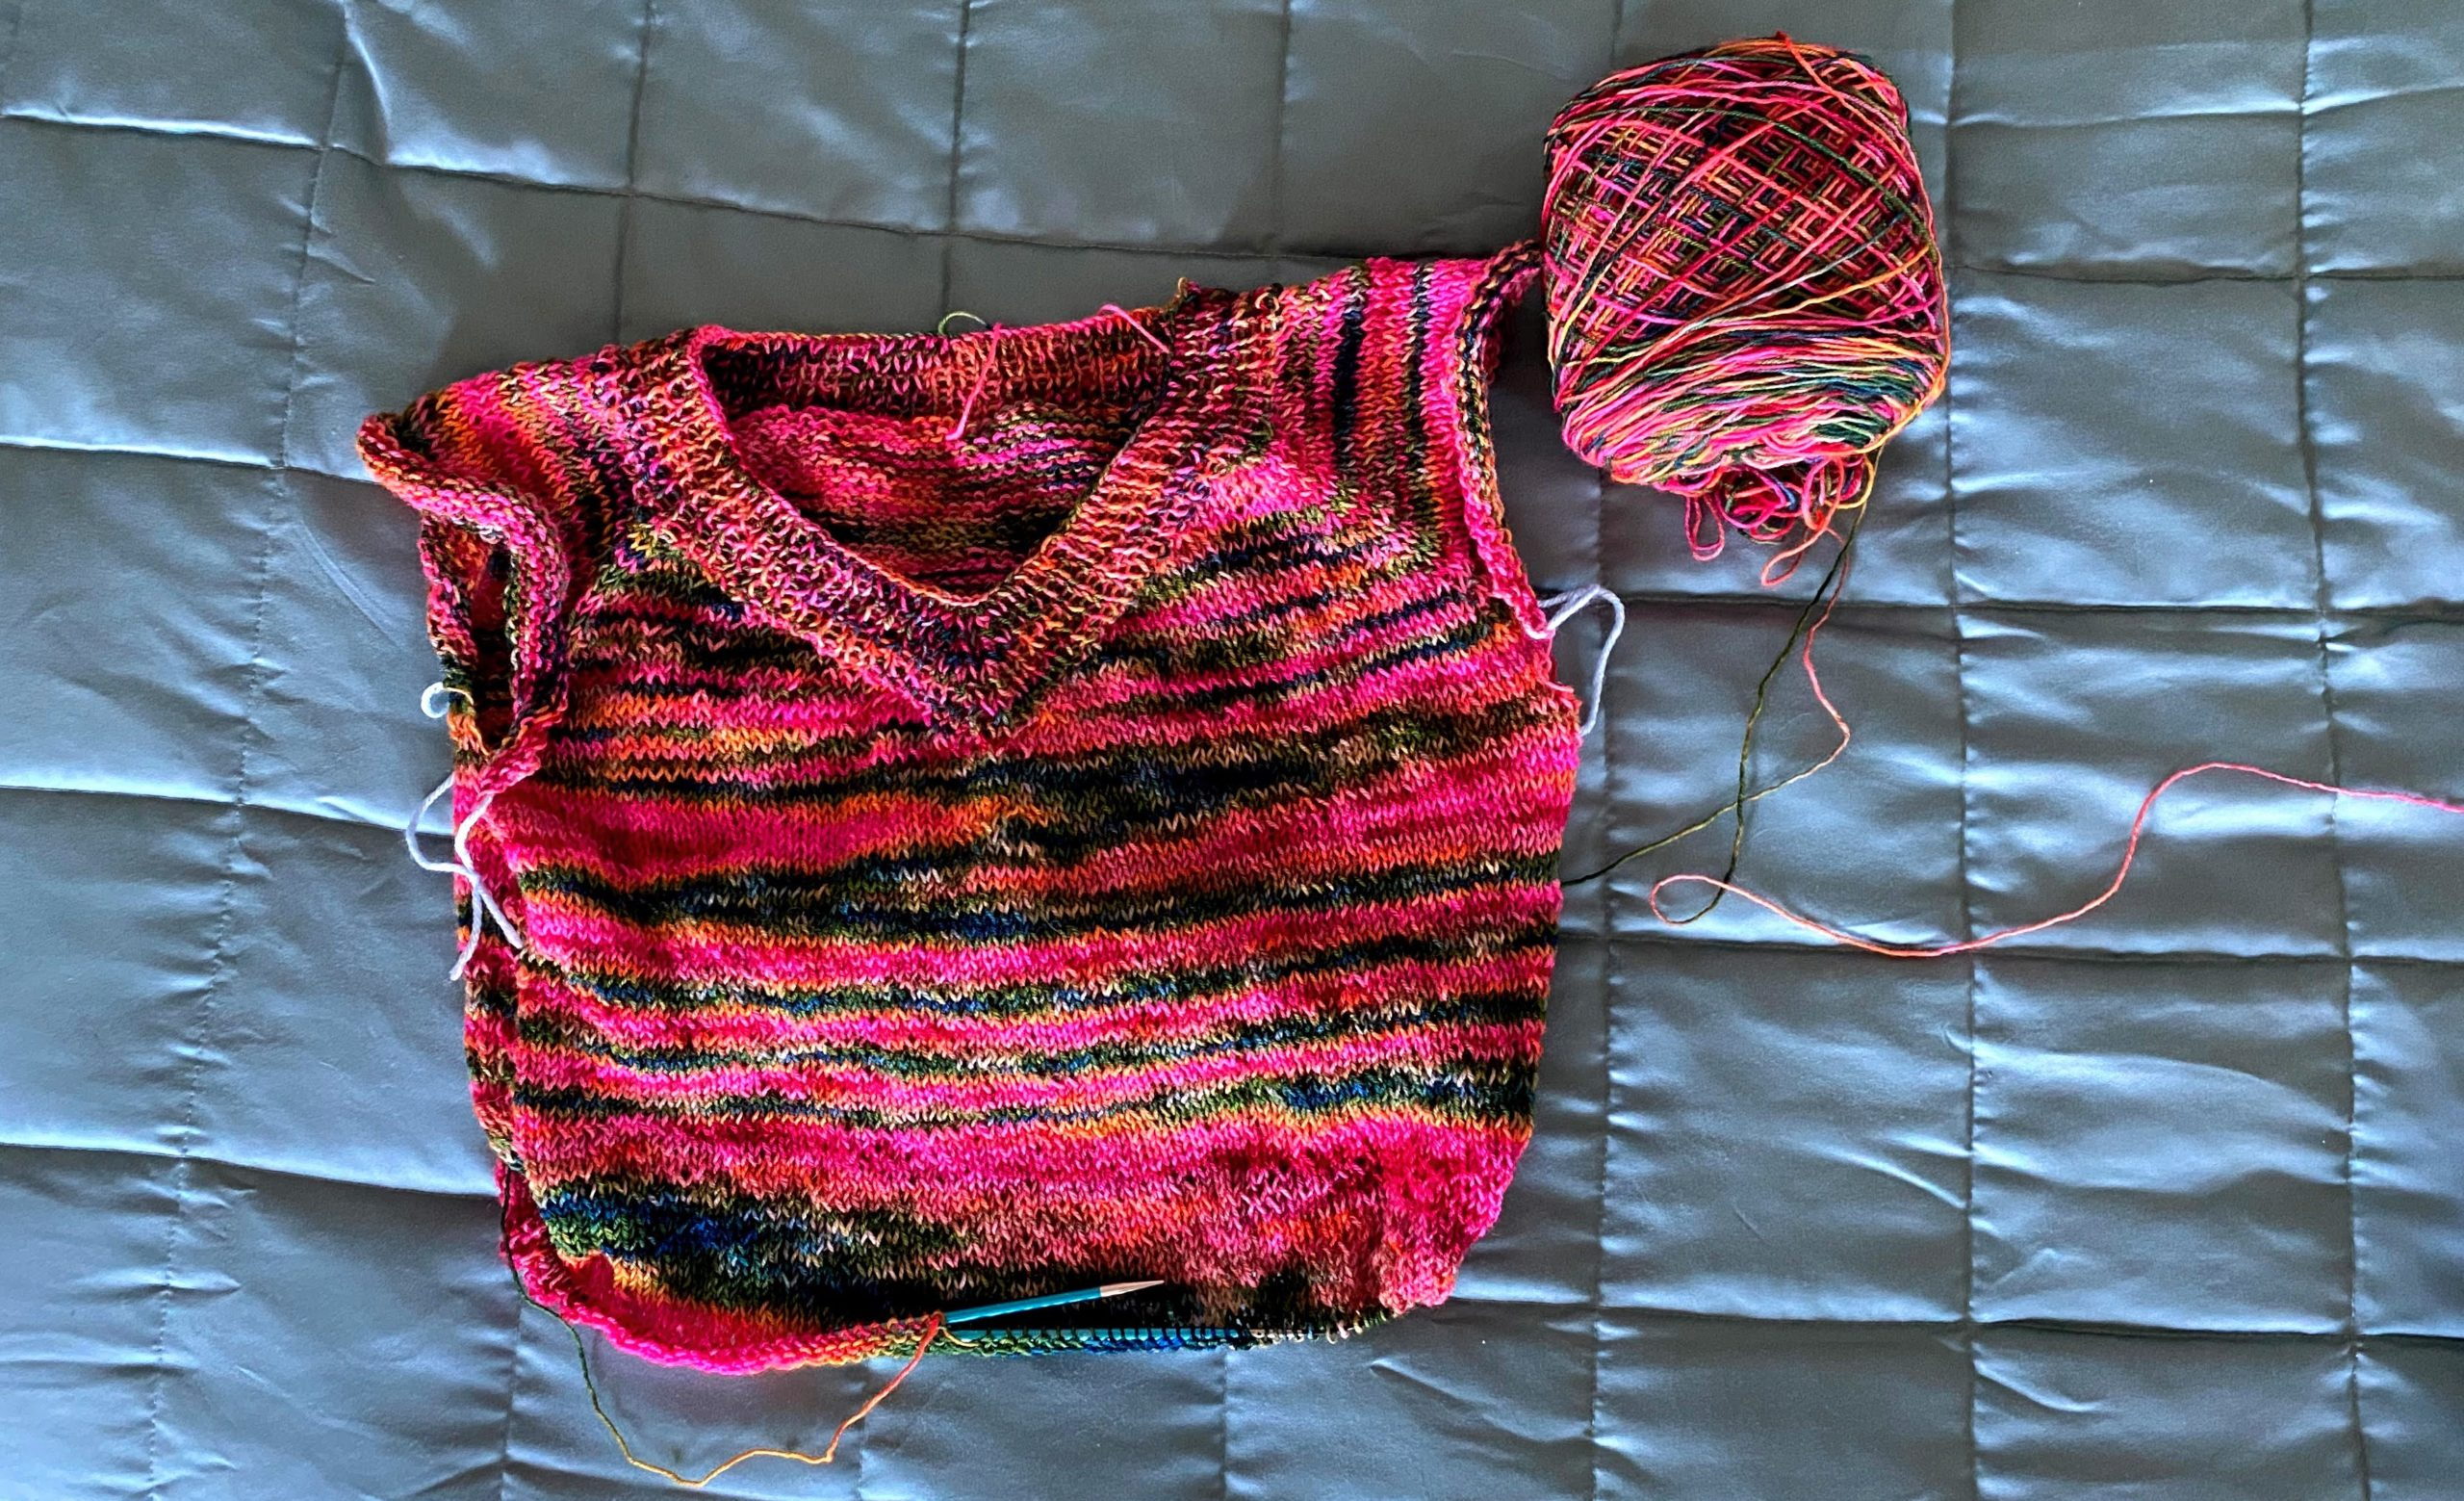 A brightly colored partially finished sweater